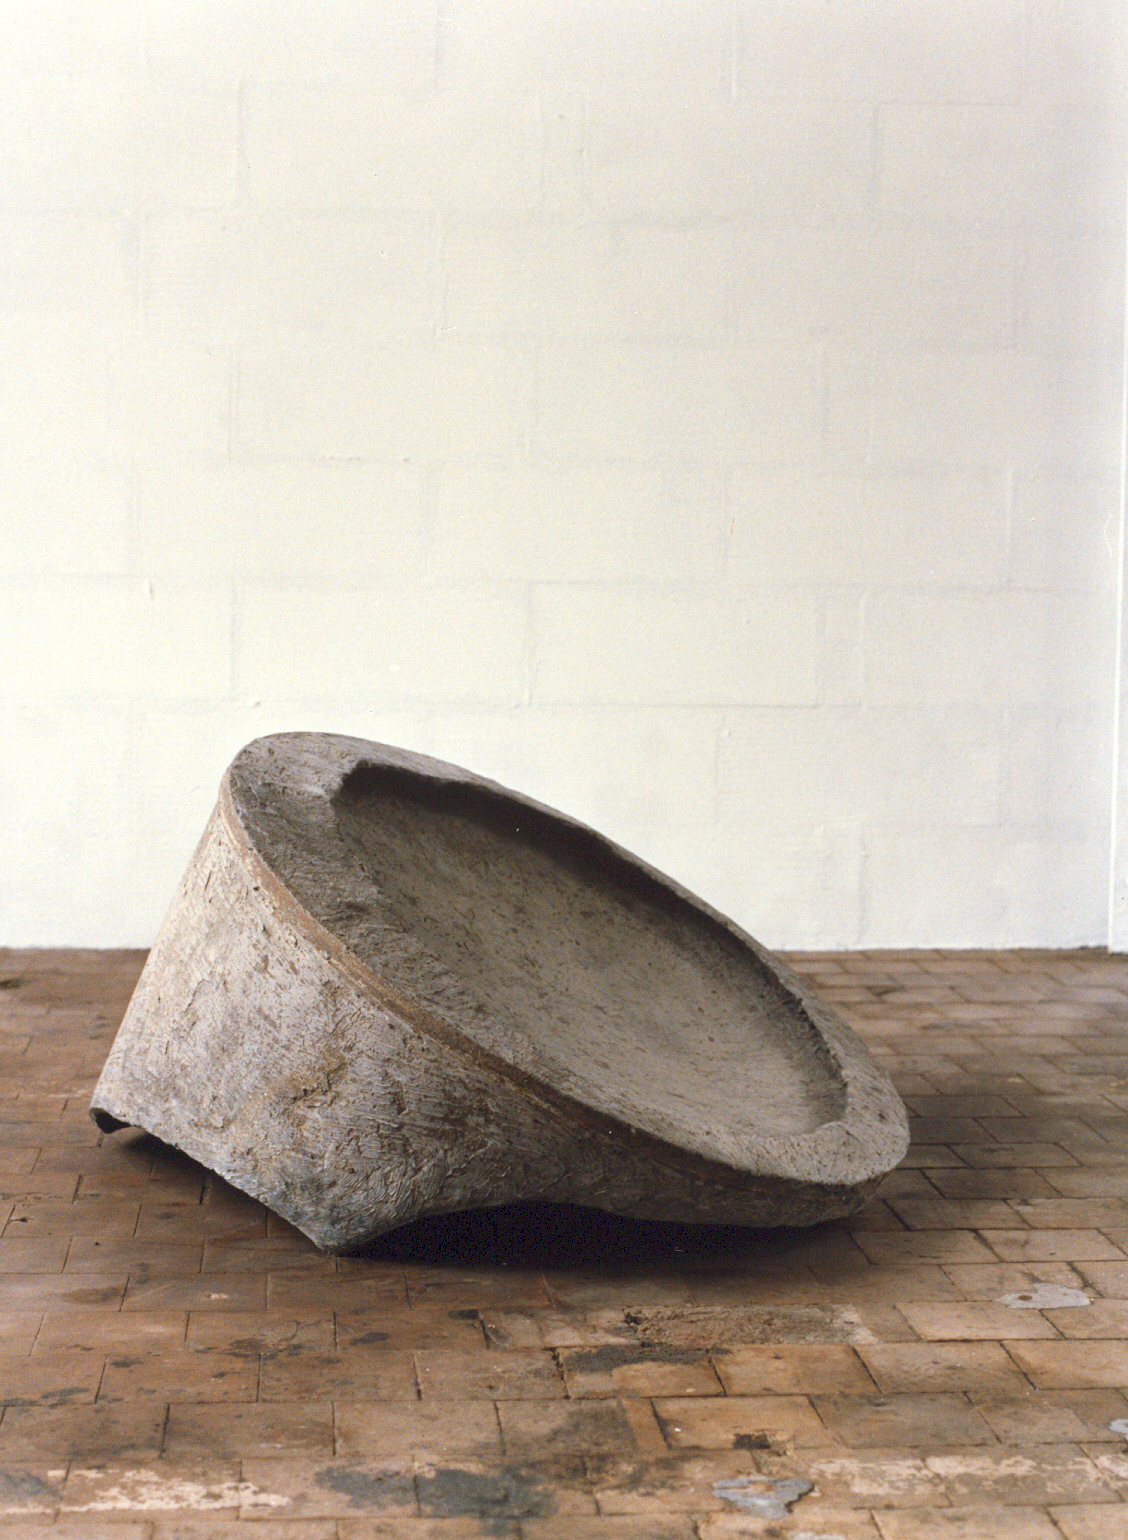 1988-z.t.-aluminiumcement, staal, 100x70cm